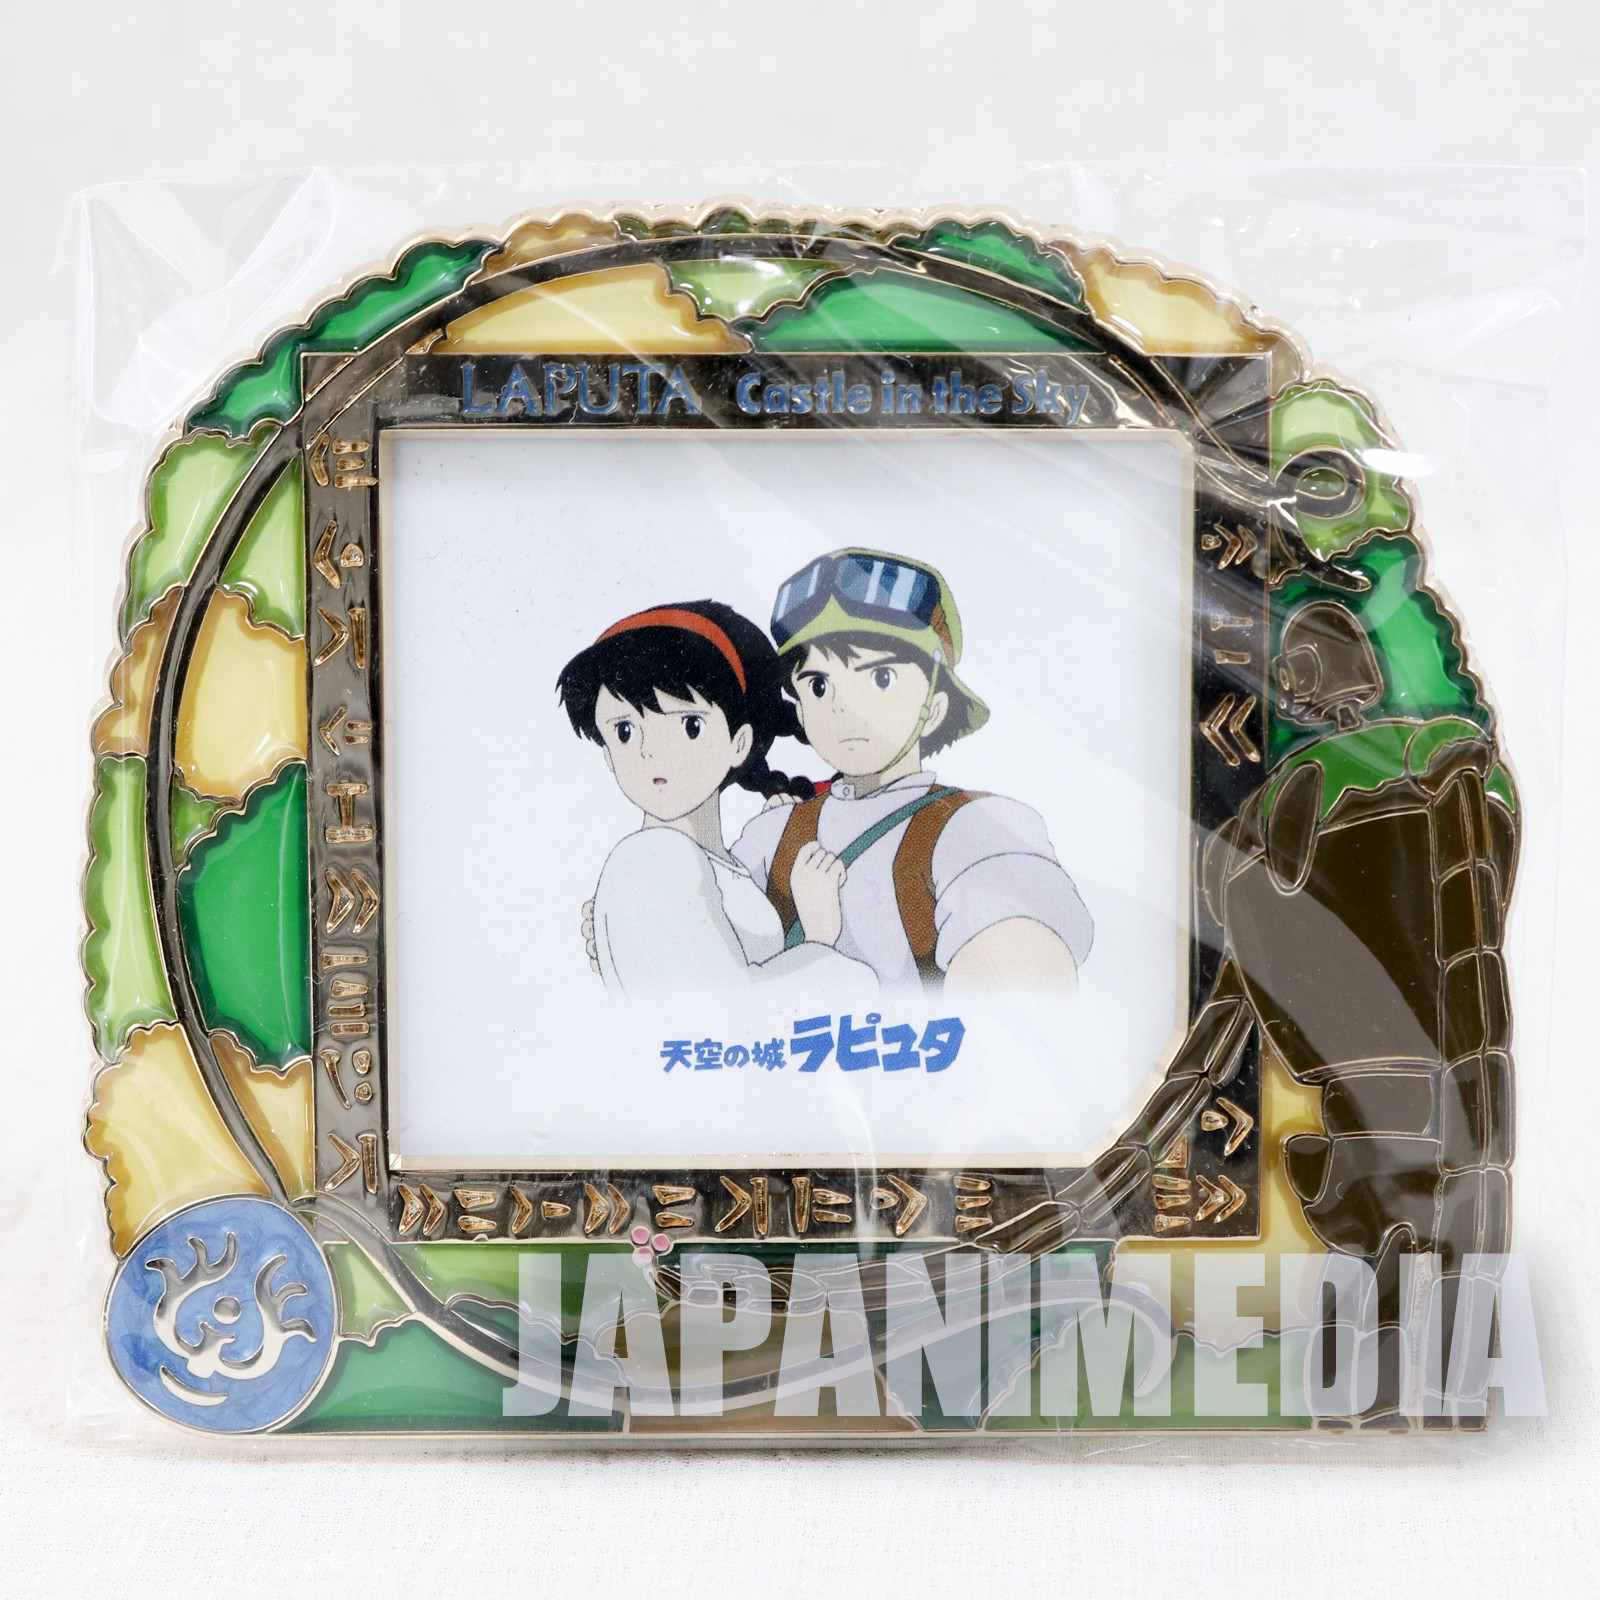 Laputa Castle in the Sky Robot Soldier Stained Glass Small Photo Frame Ghibli